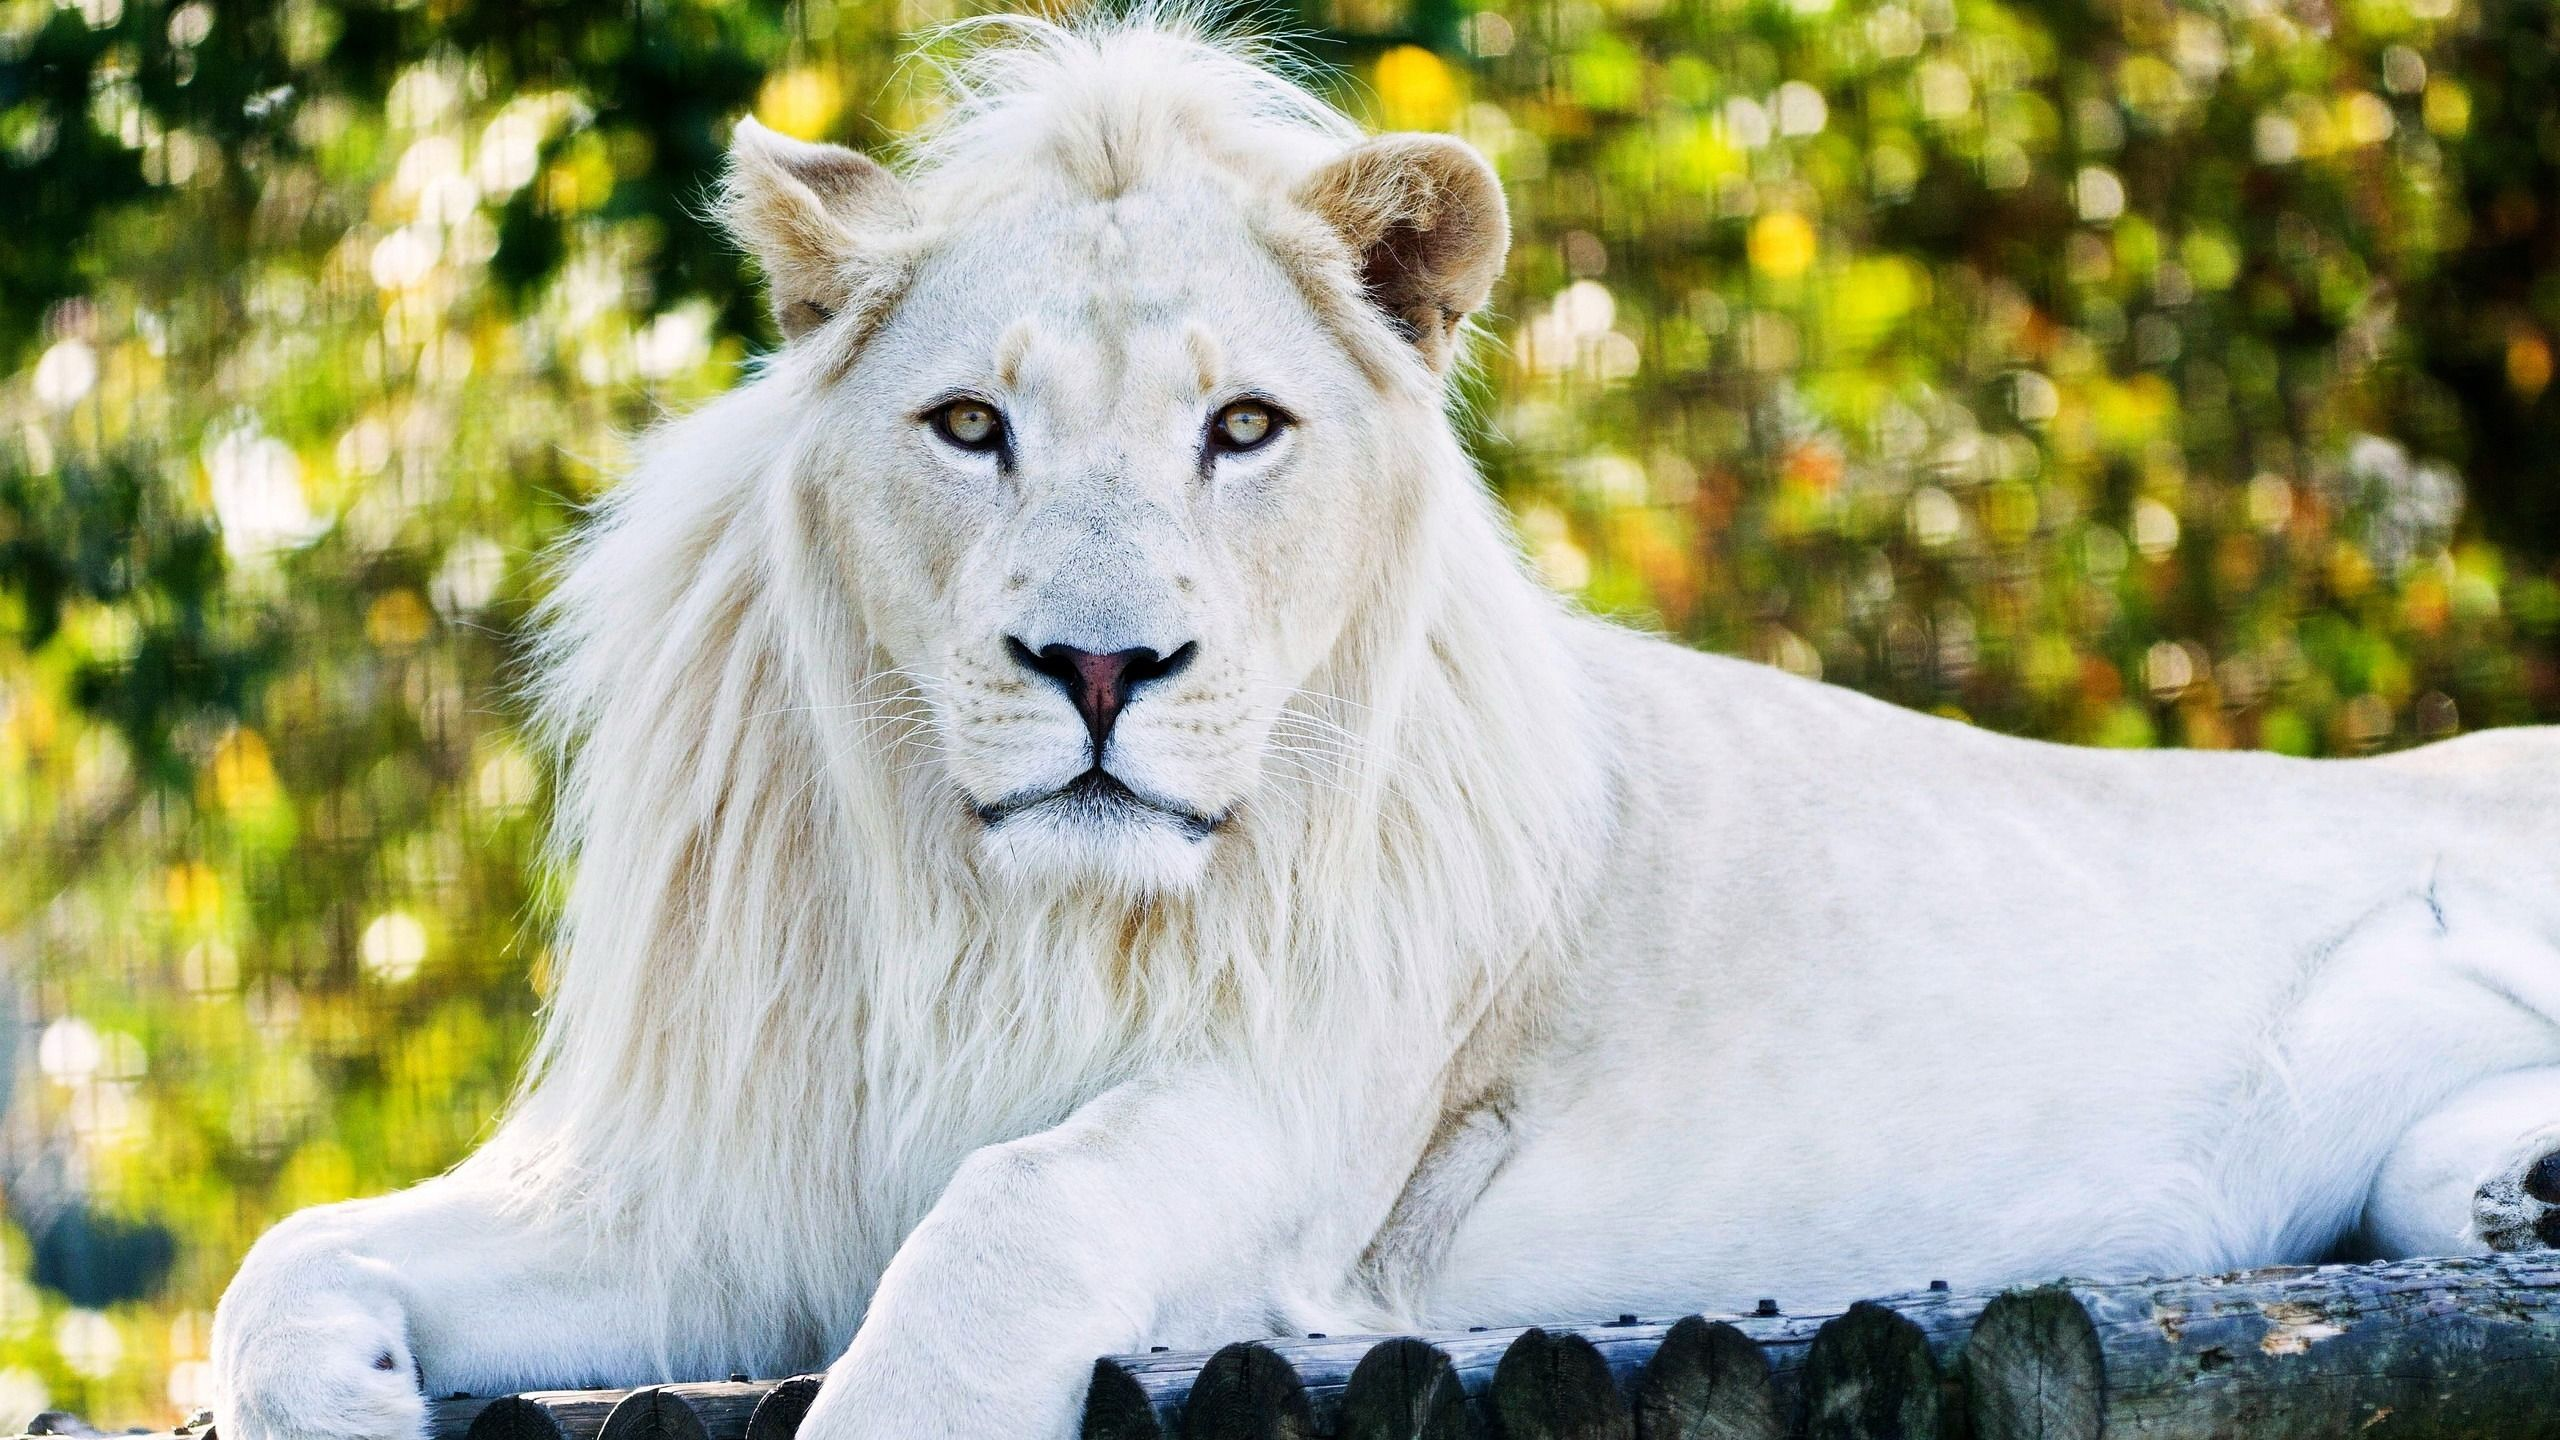 White Lion Wallpapers Top Free White Lion Backgrounds Images, Photos, Reviews